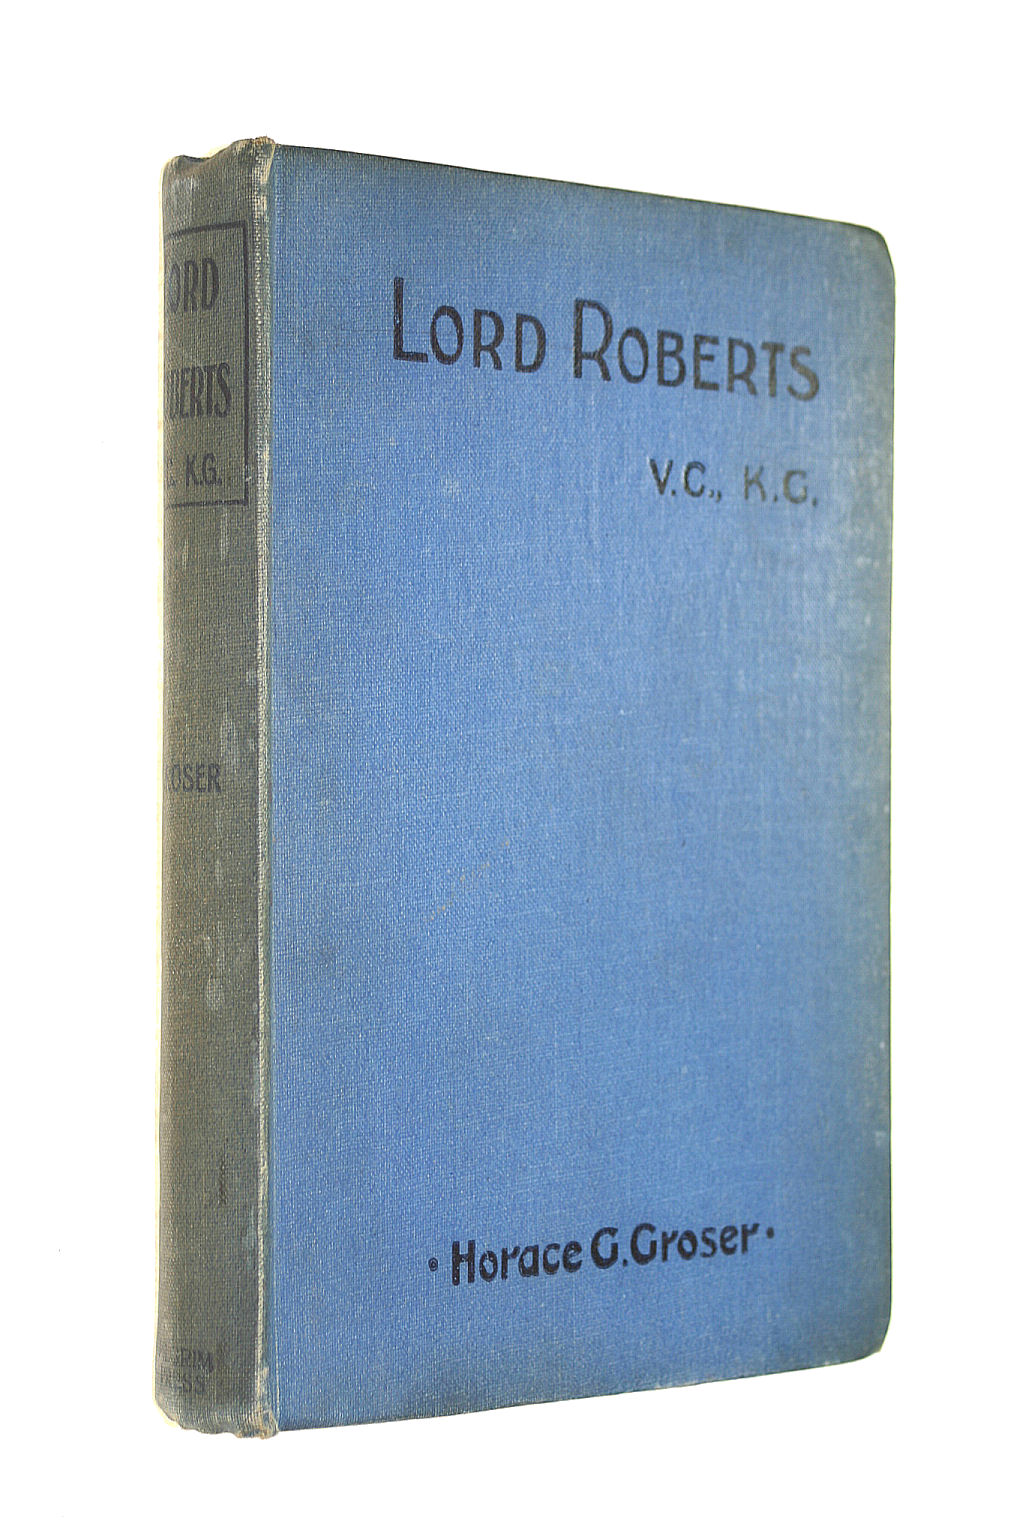 Image for Lord Roberts, V.C., K.G: A Biographical Sketch